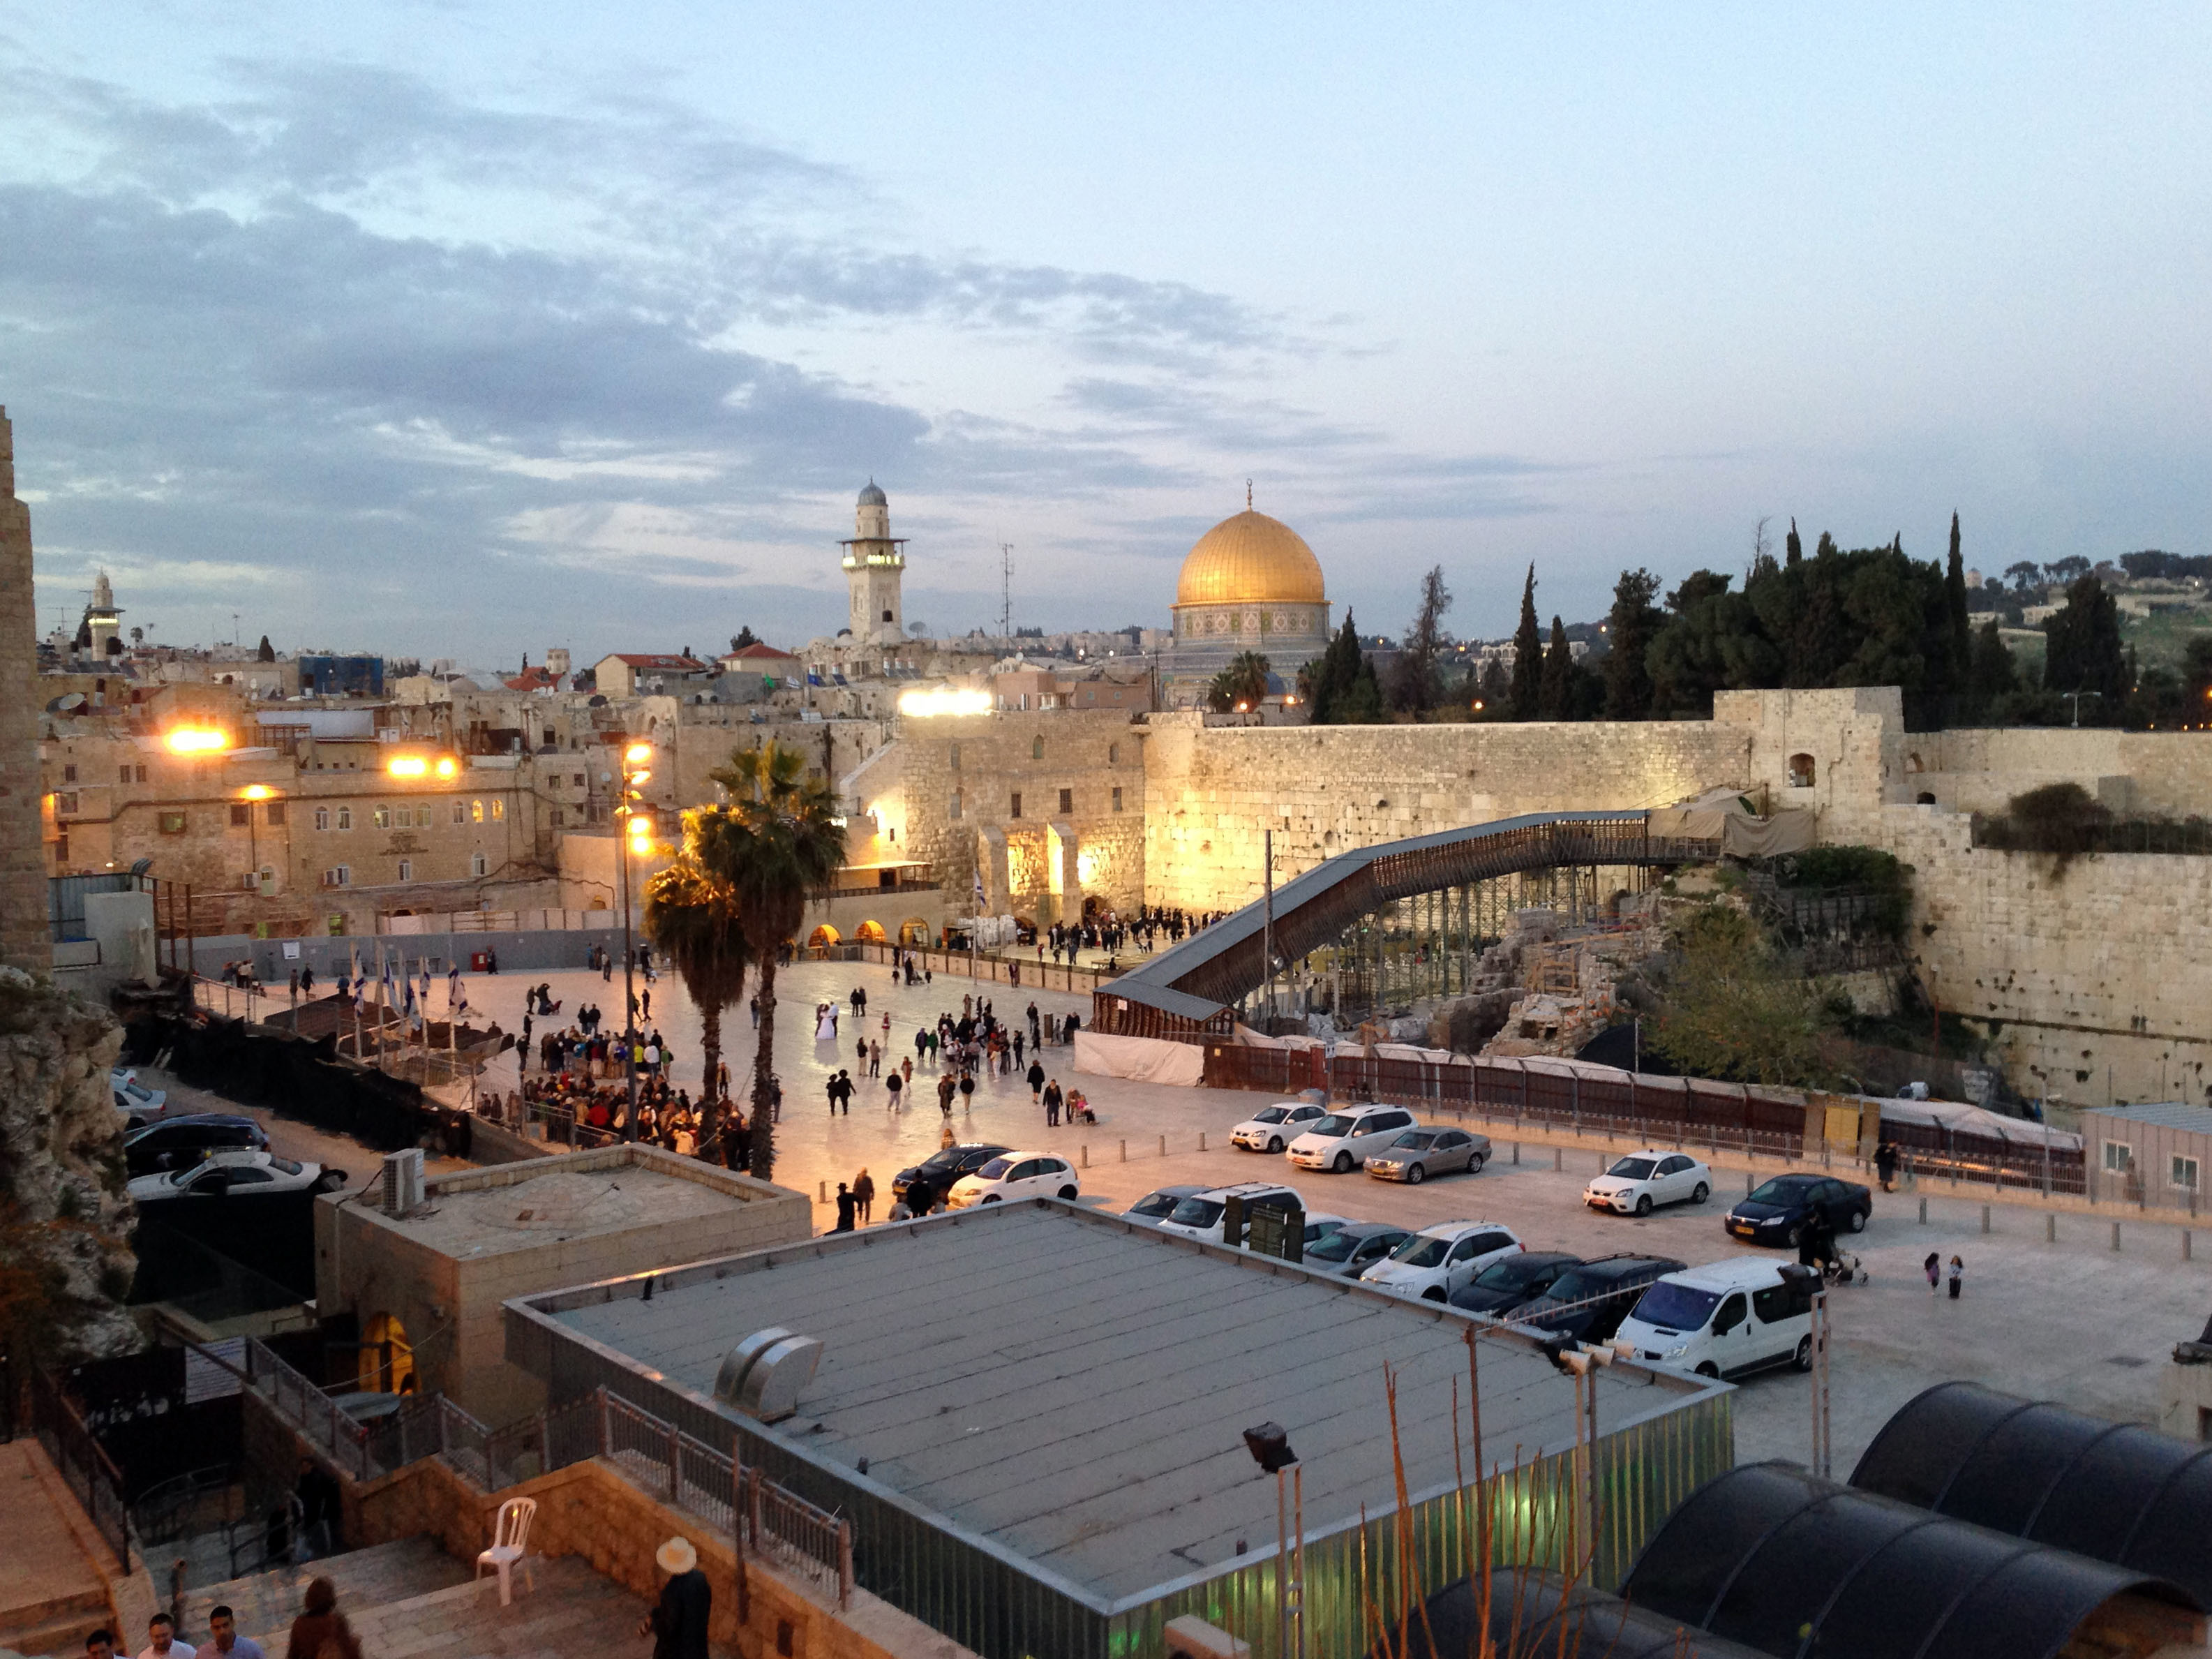 The Western Wall in Jerusalem, the capital of Israel.